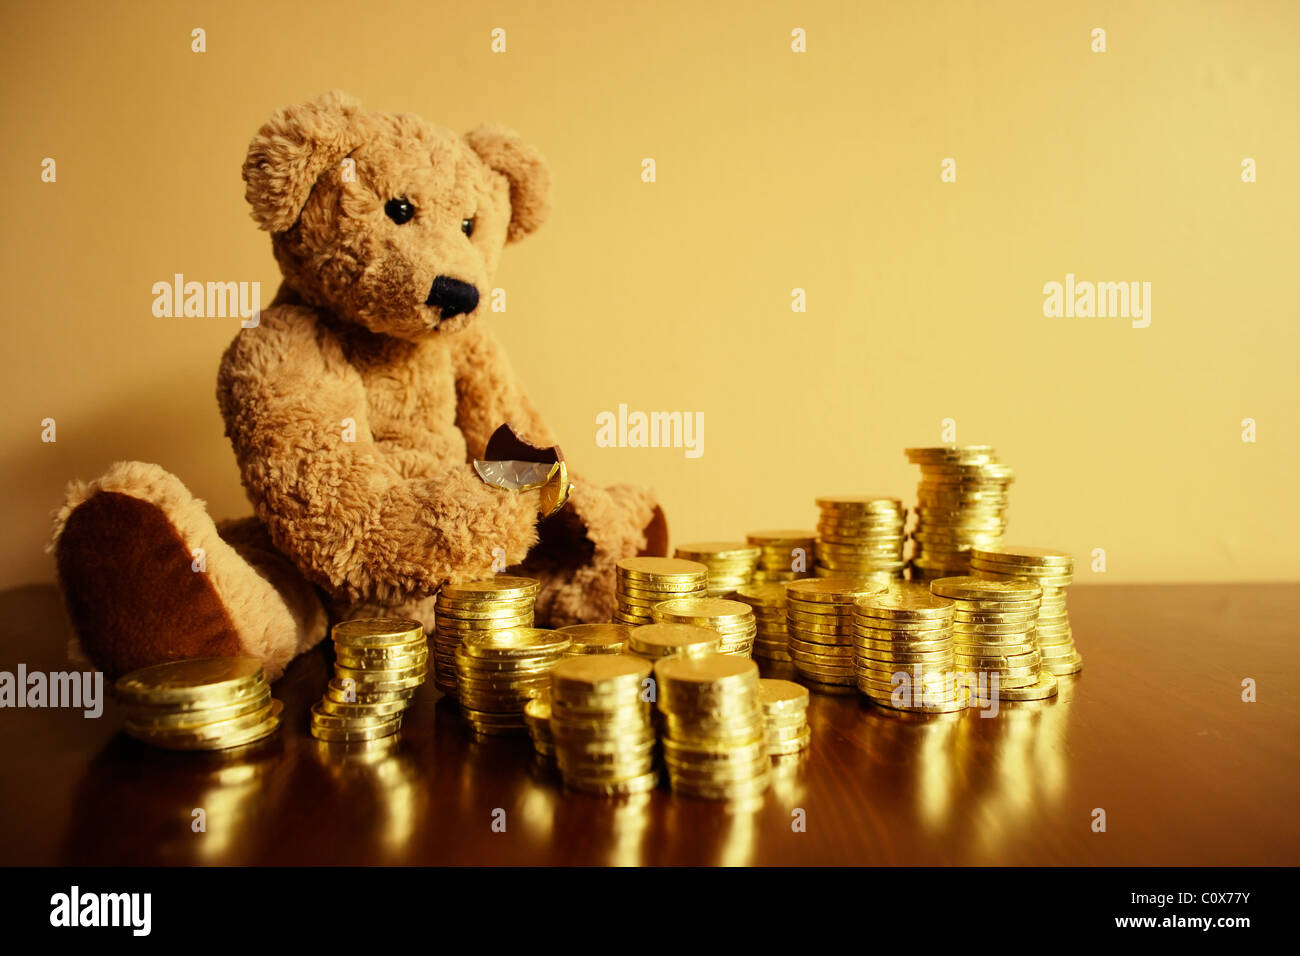 Ted tucks into his chocolate gold coin investment. - Stock Image